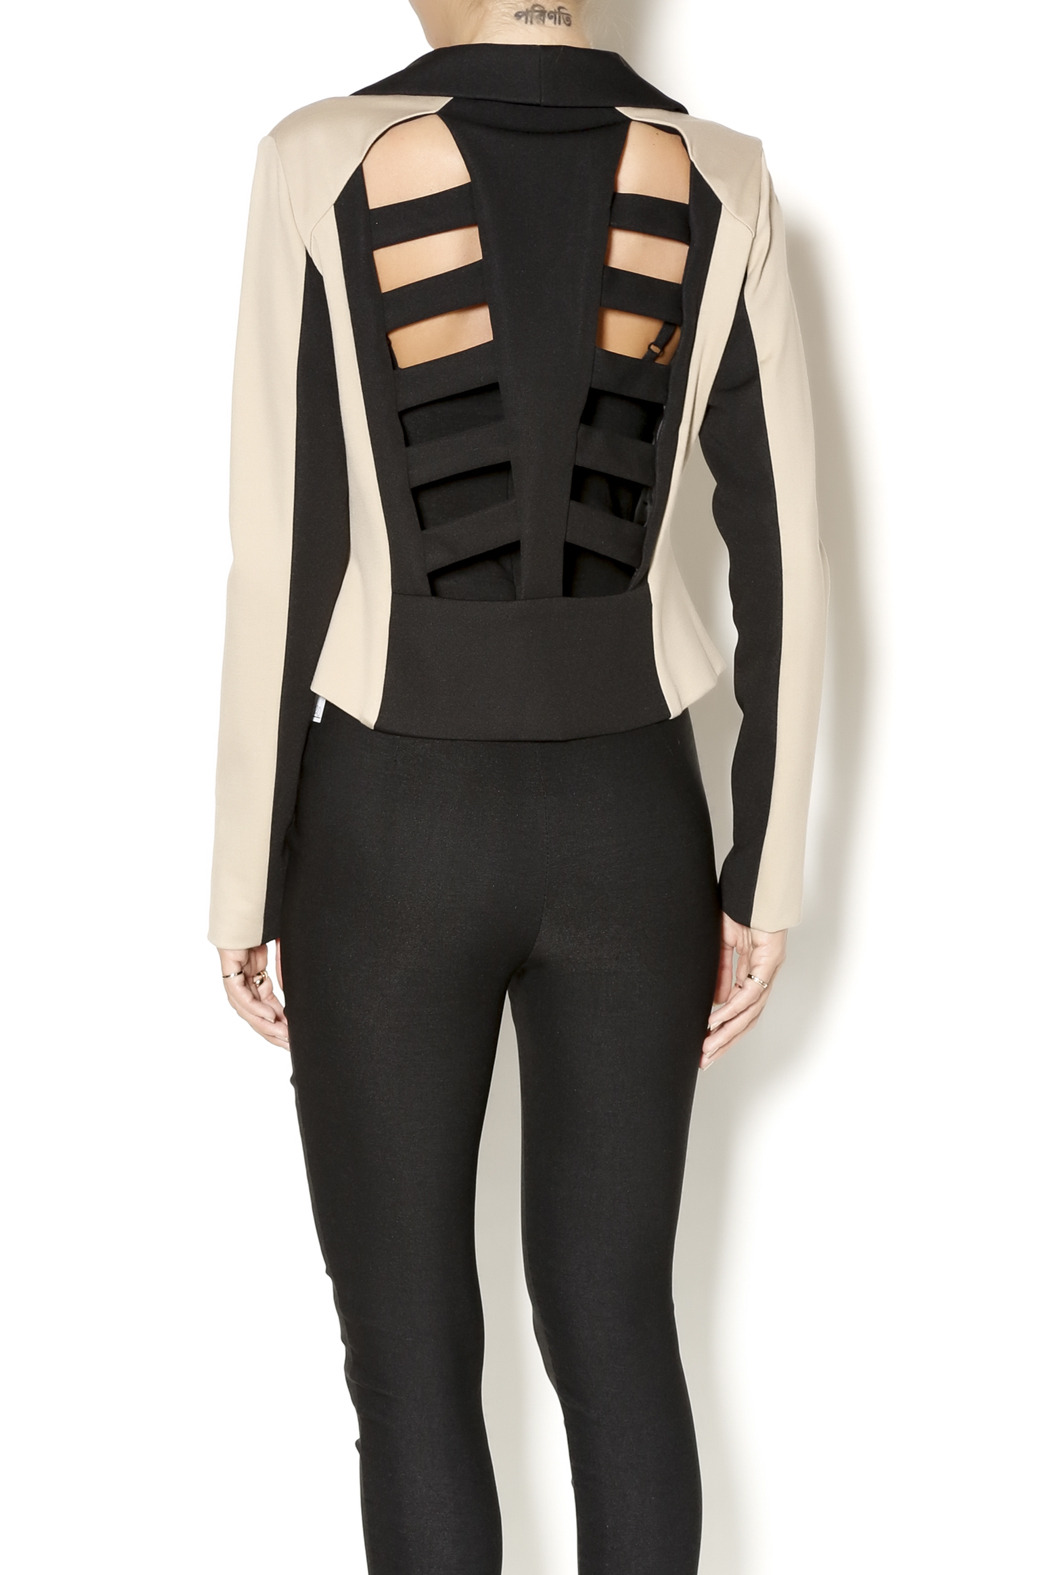 Whitney EVE Whitney Eve Cut-Out Blazer - Back Cropped Image